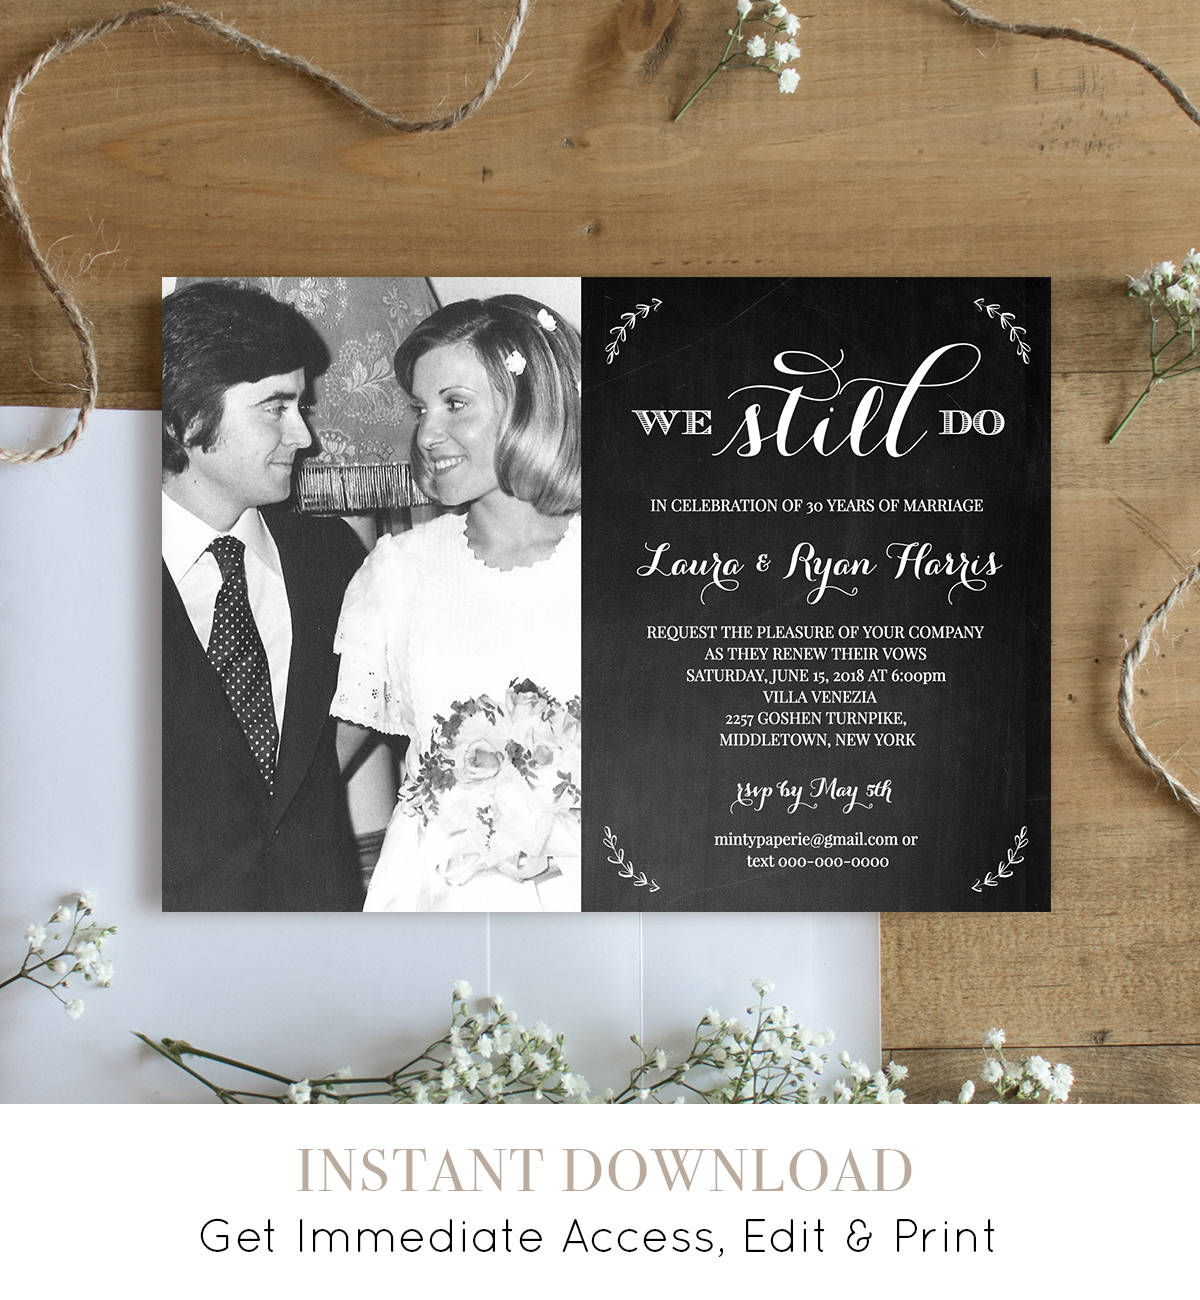 Wedding Vow Renewal.Wedding Vow Renewal Template We Still Do Instant Download Photo